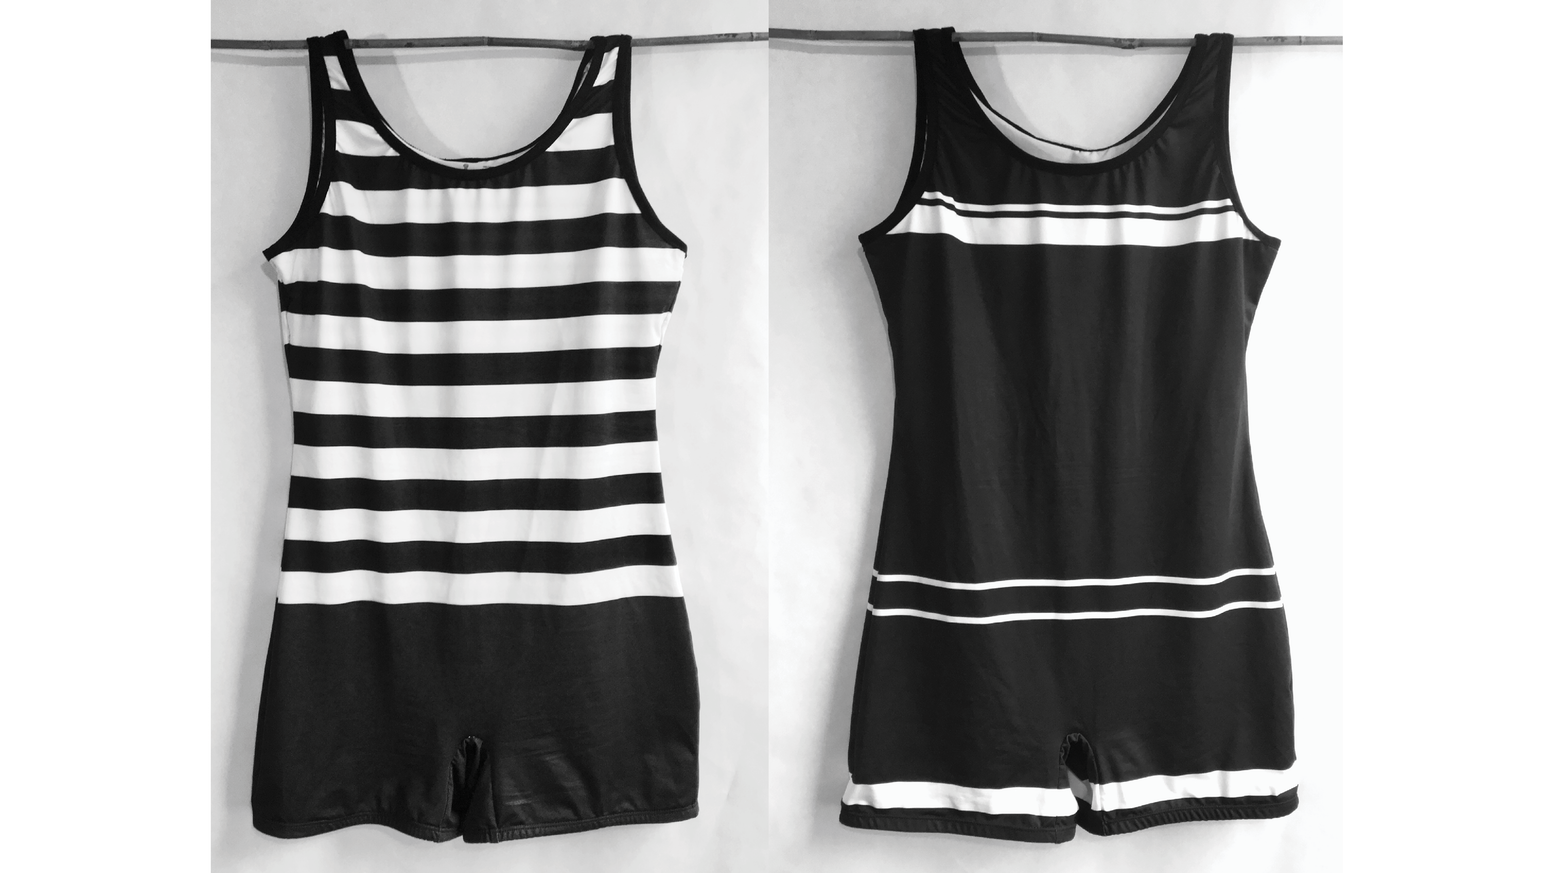 One-piece unisex swimsuits inspired by 1920s styles.  Made in the USA.